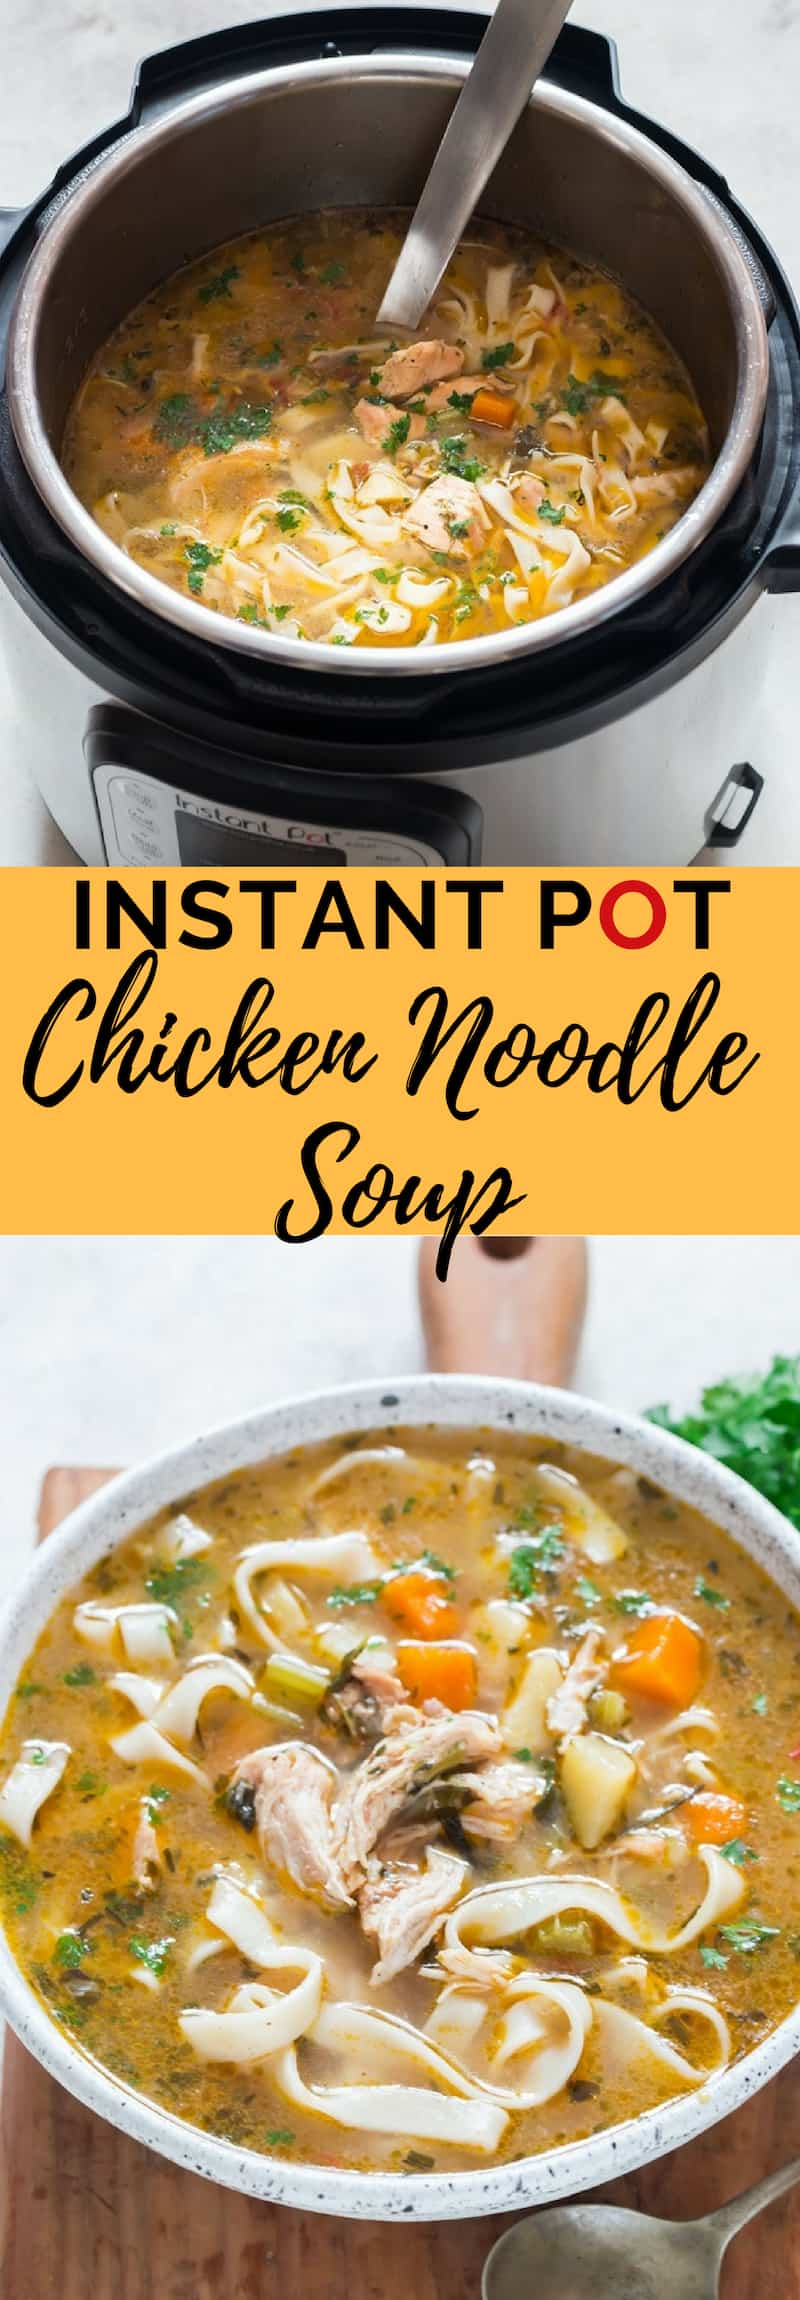 Instant Pot Chicken Noodle Soup with Text Overlay